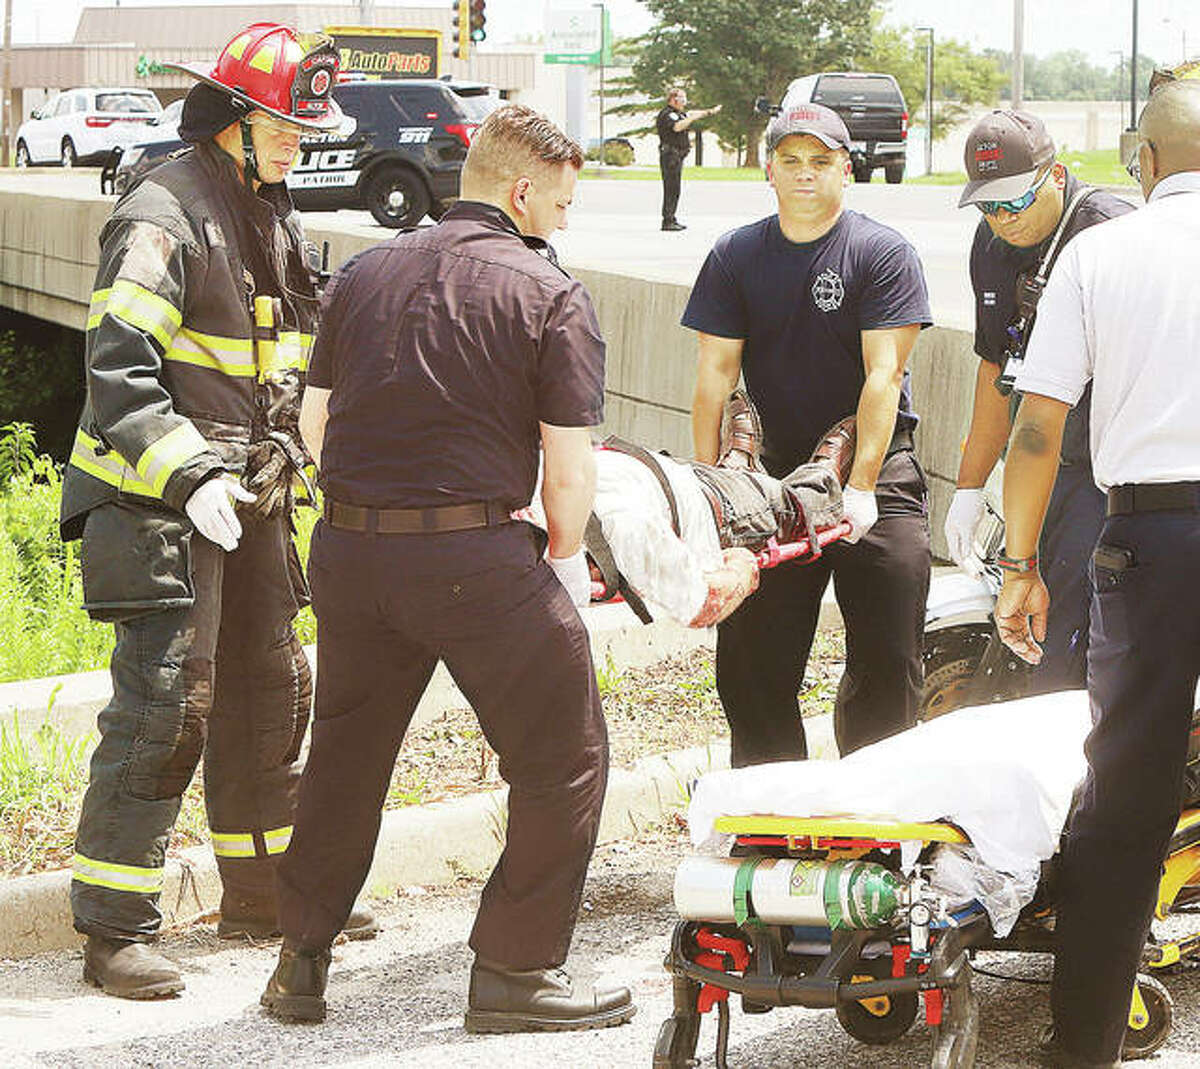 The operator of a Kawasaki motorcycle is raised onto a stretcher for transport to a local hospital Monday at the intersection of Alby and Delmar streets in Alton at about noon. The motorcycle collided with the front end of a Toyota Avalon. The Avalon drive did not appear injured in the collision.